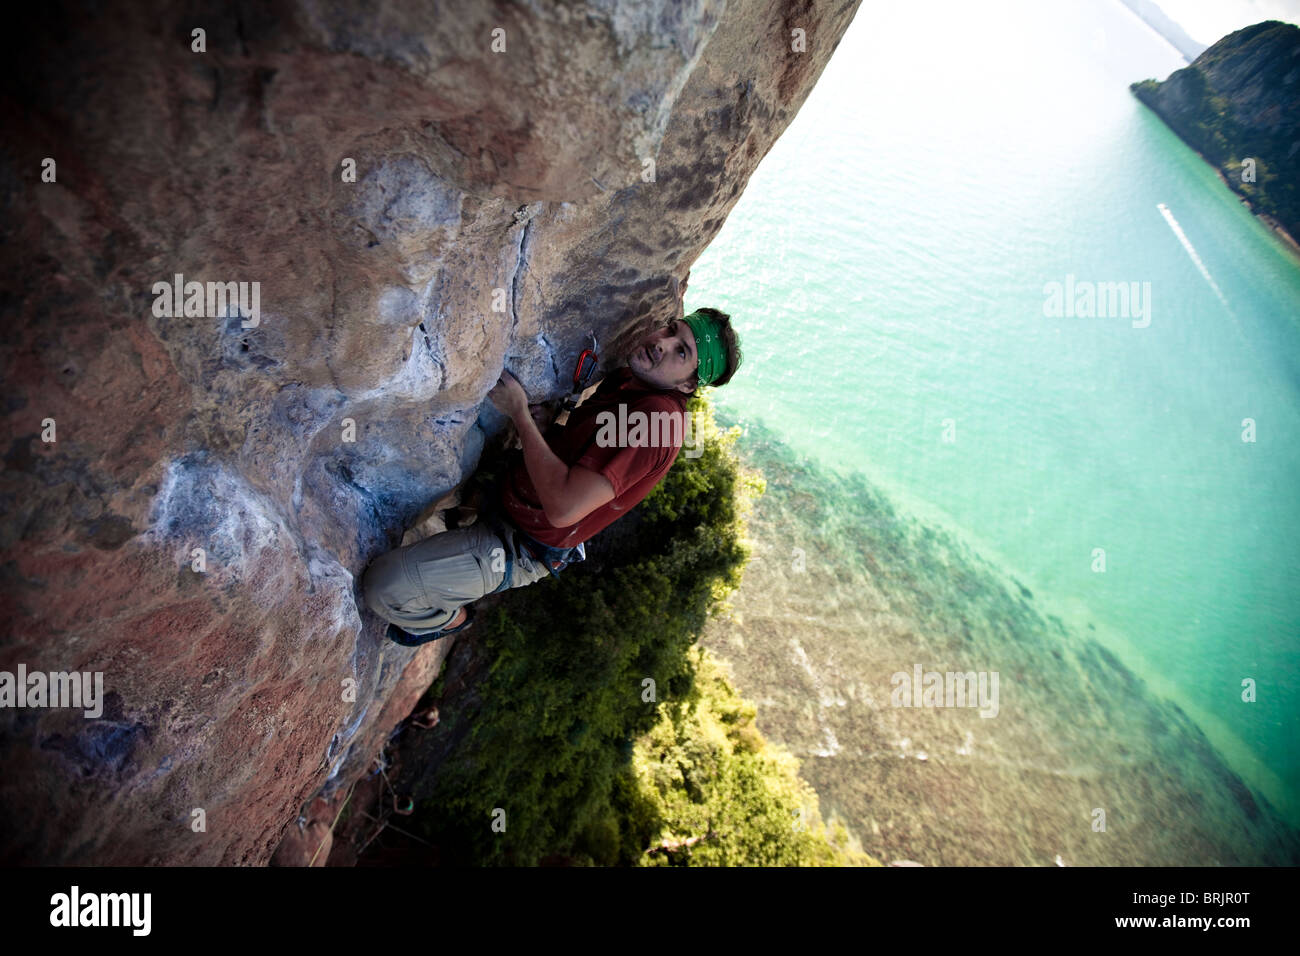 Strained male climber looks to his next move on a limestone beach cliff in Thailand. - Stock Image